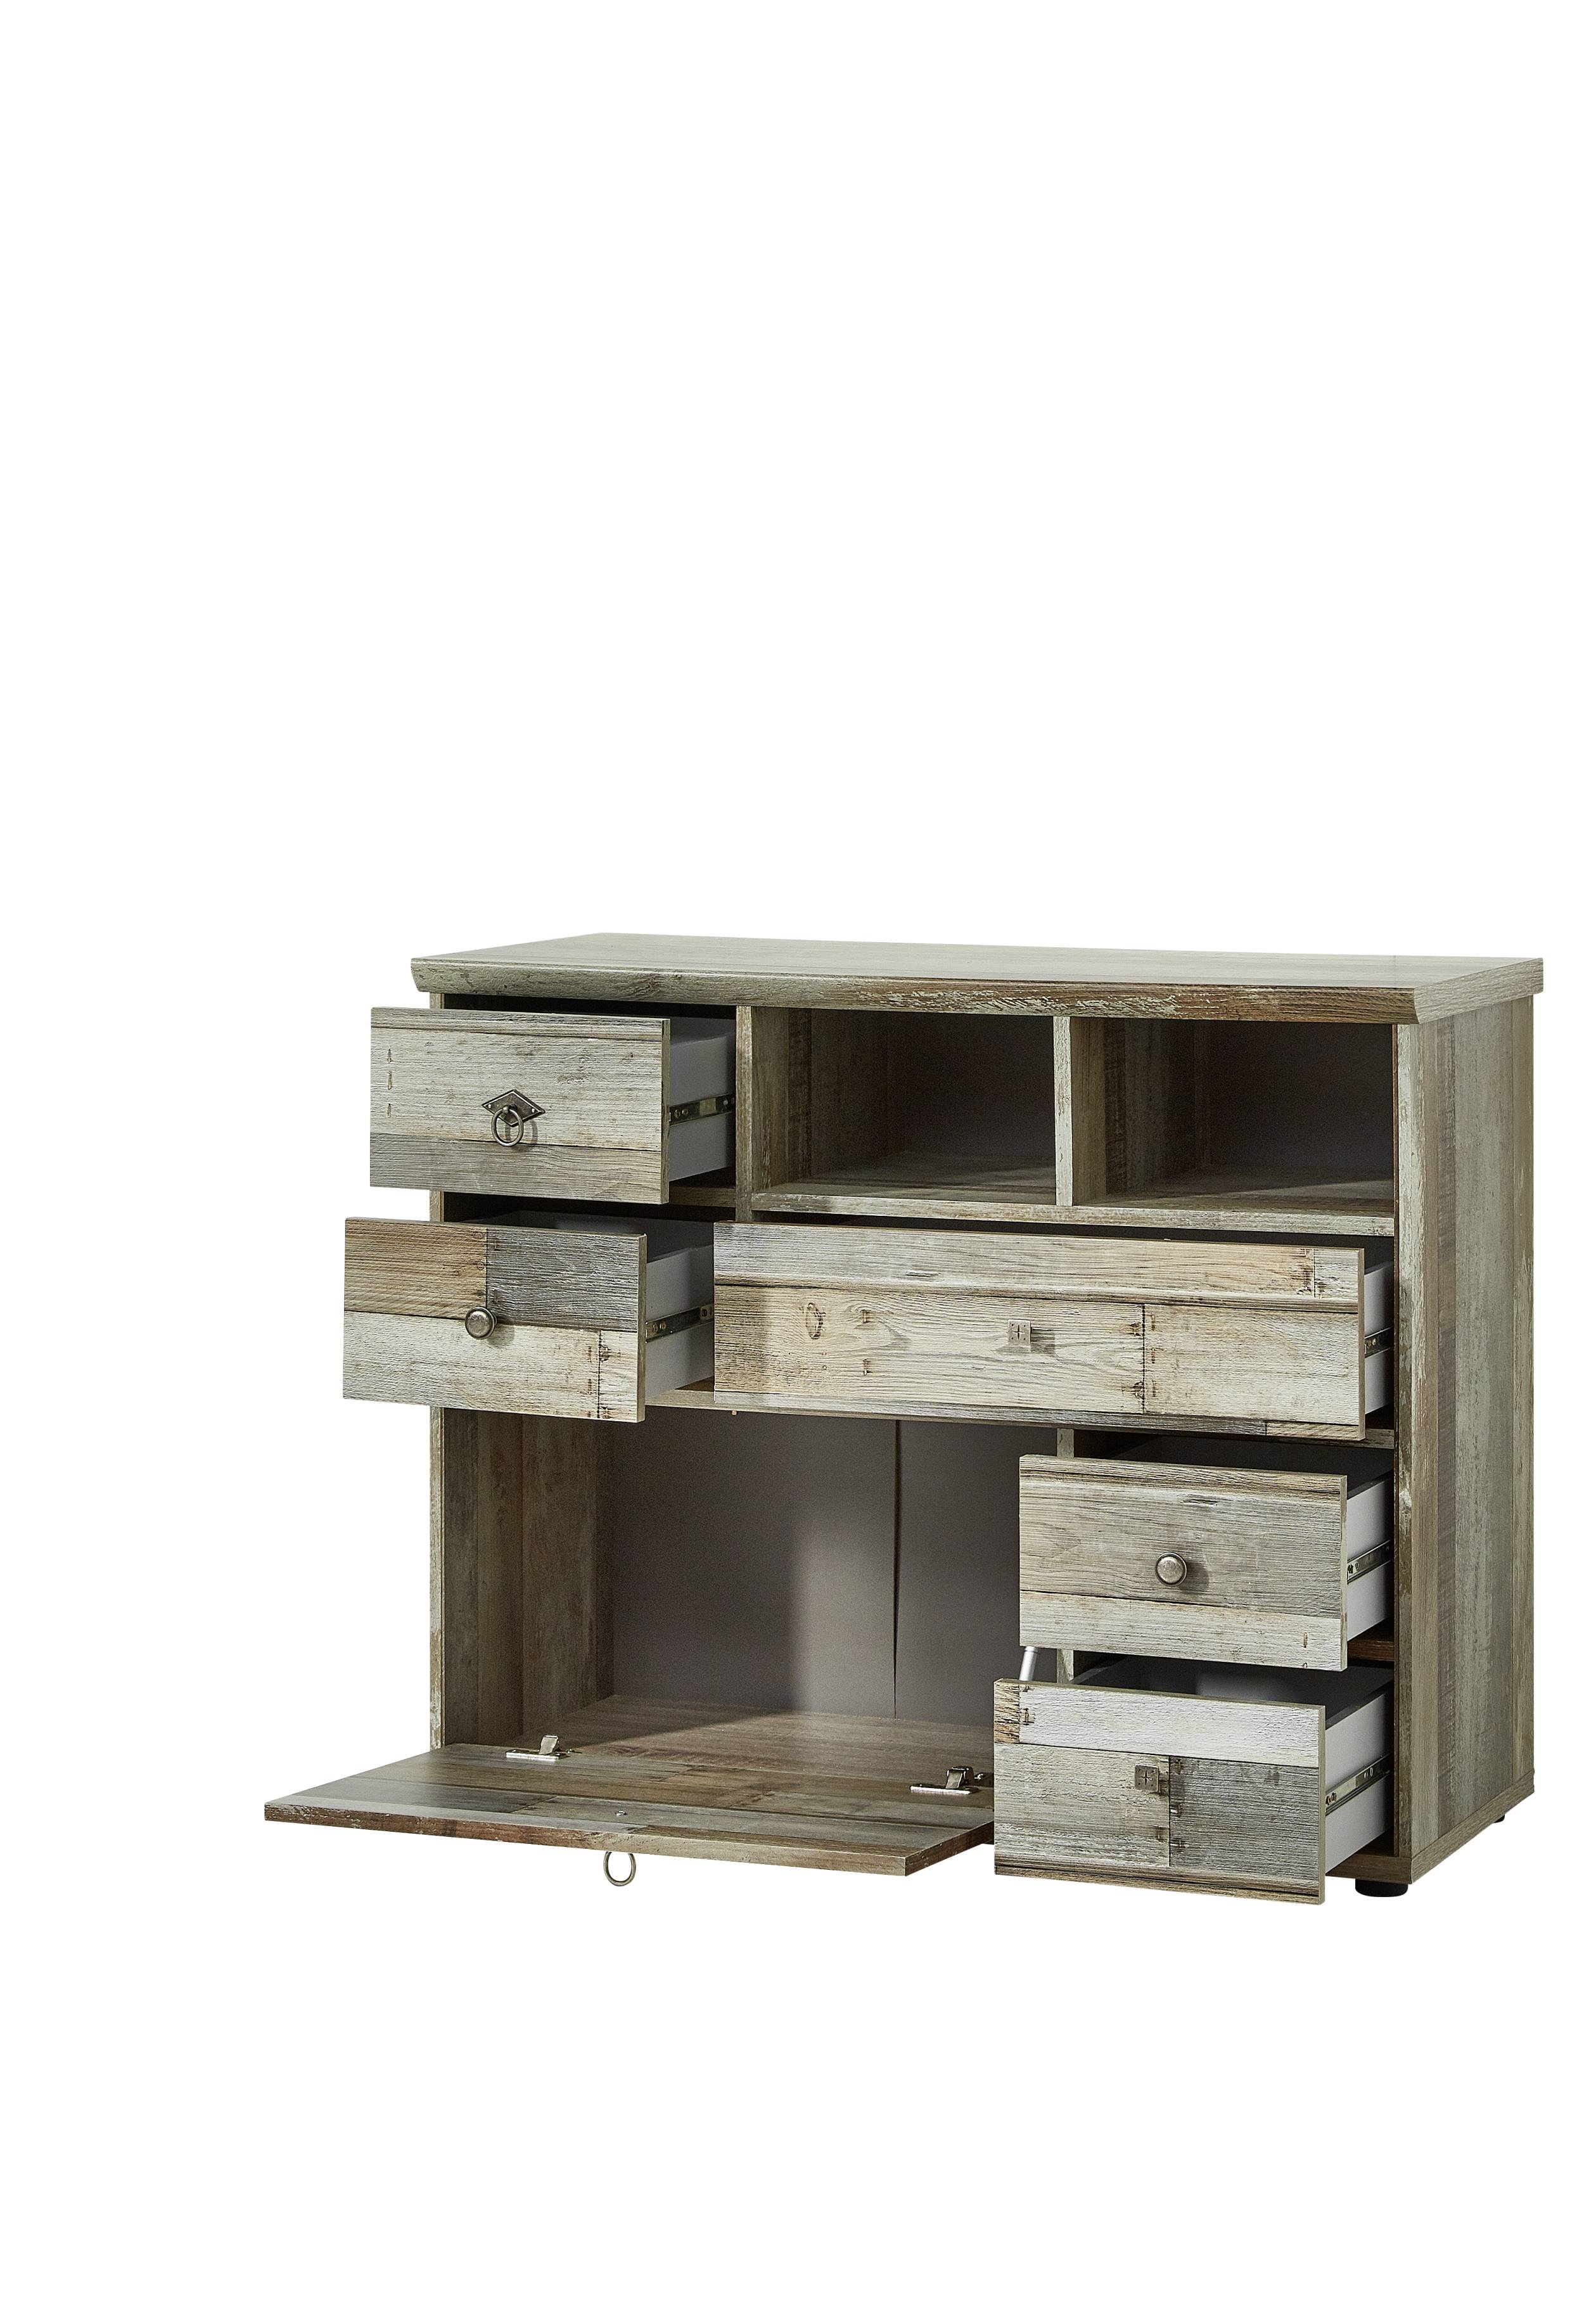 wohnwand wohnzimmer set 4 tlg schrank kommode lowboard wandregal vintage shabby 4250314530731. Black Bedroom Furniture Sets. Home Design Ideas